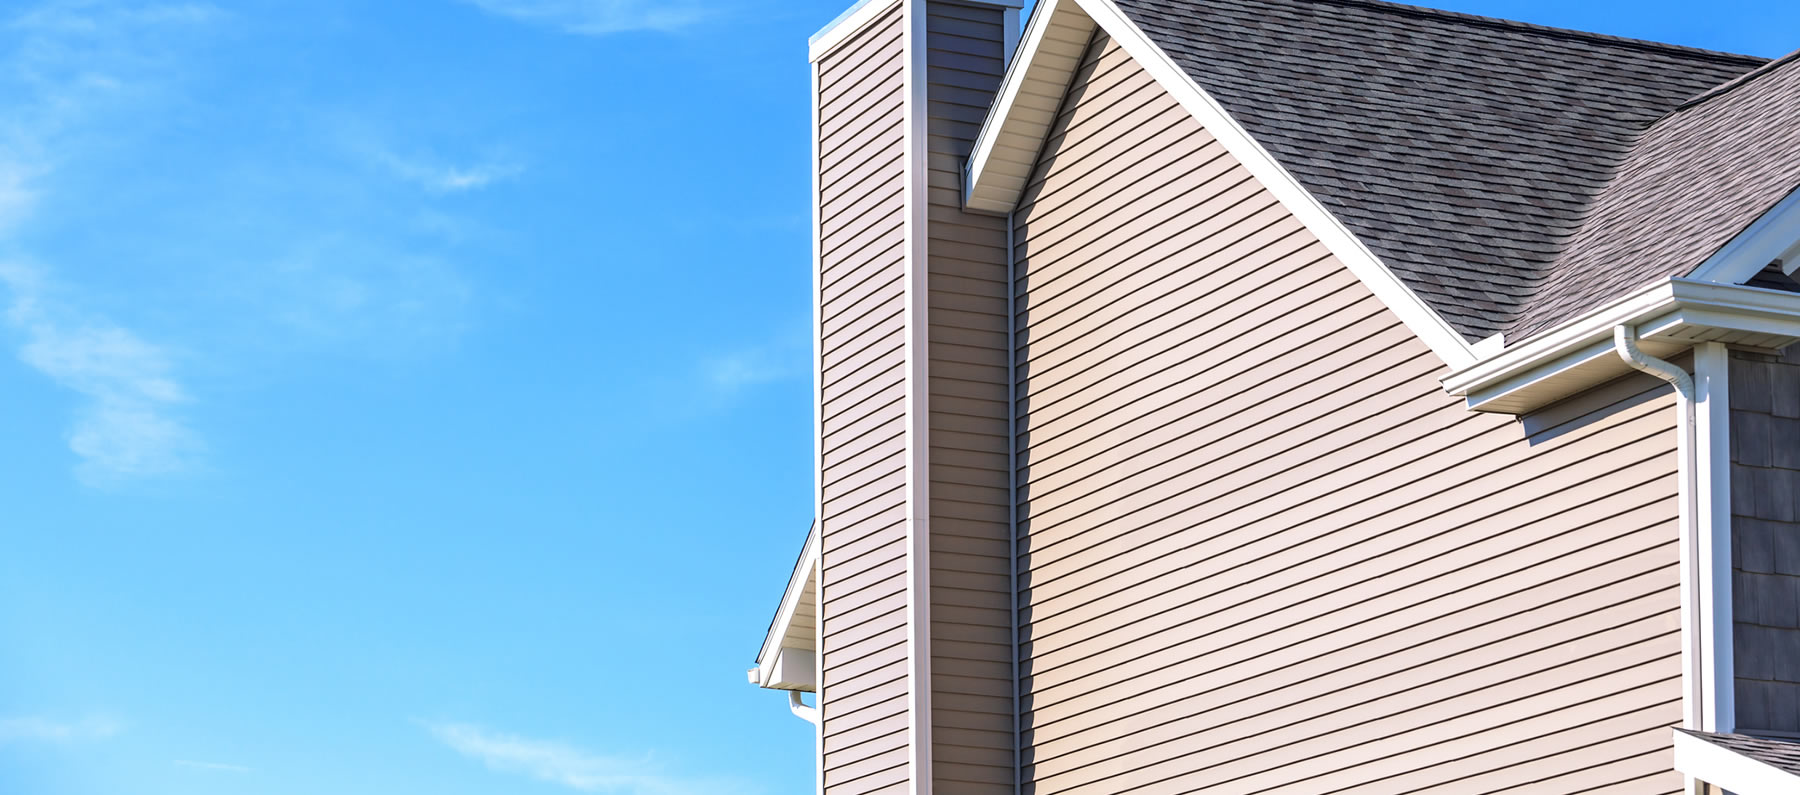 Blue sky with a tan colored home showing the siding